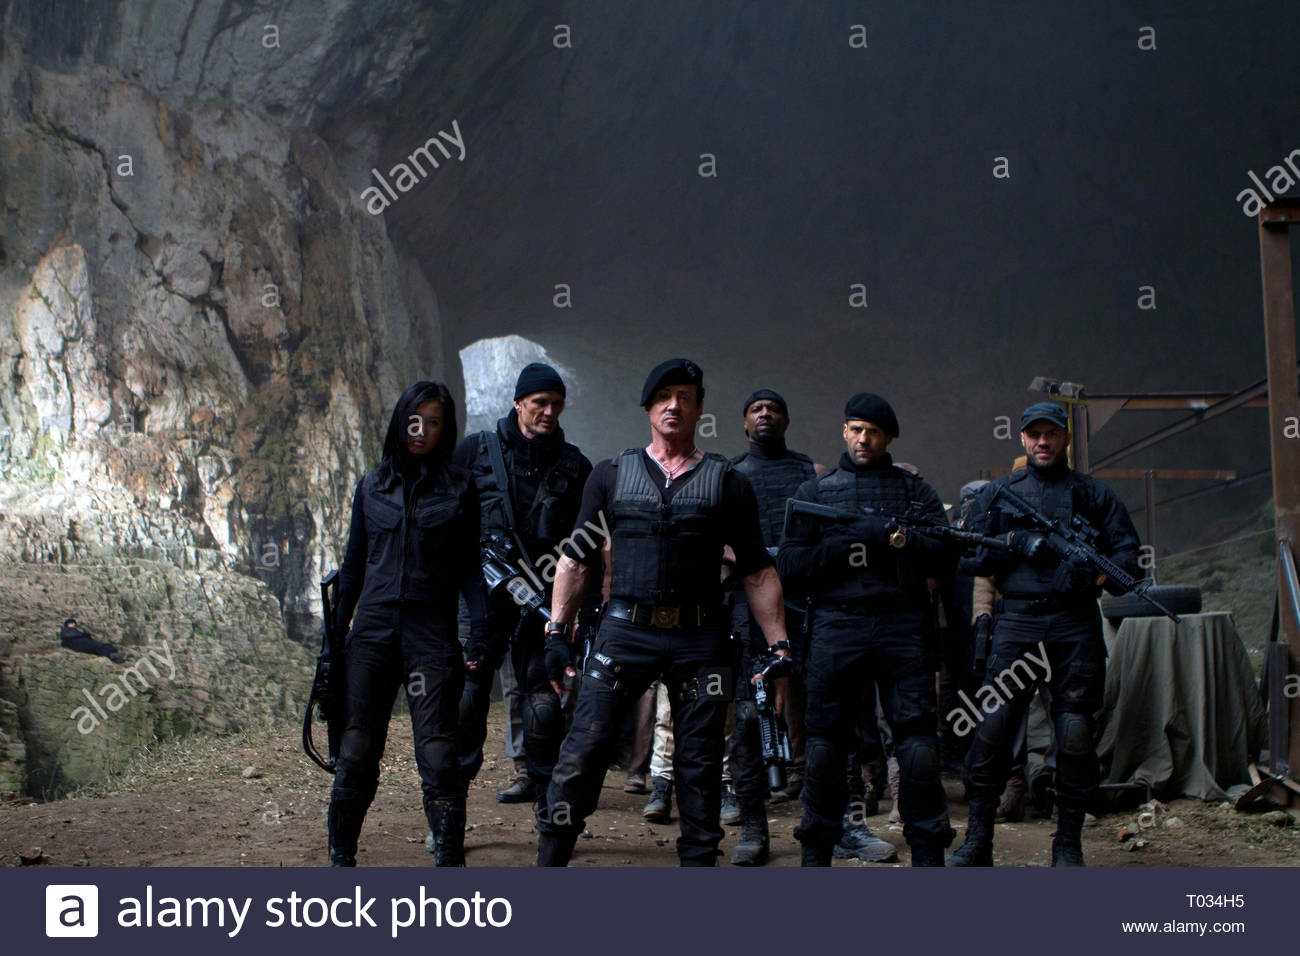 THE EXPENDABLES 2, NAN YU, DOLPH LUNDGREN, SYLVESTER STALLONE, TERRY CREWS, JASON STATHAM , RANDY COUTURE, 2012 - Stock Image